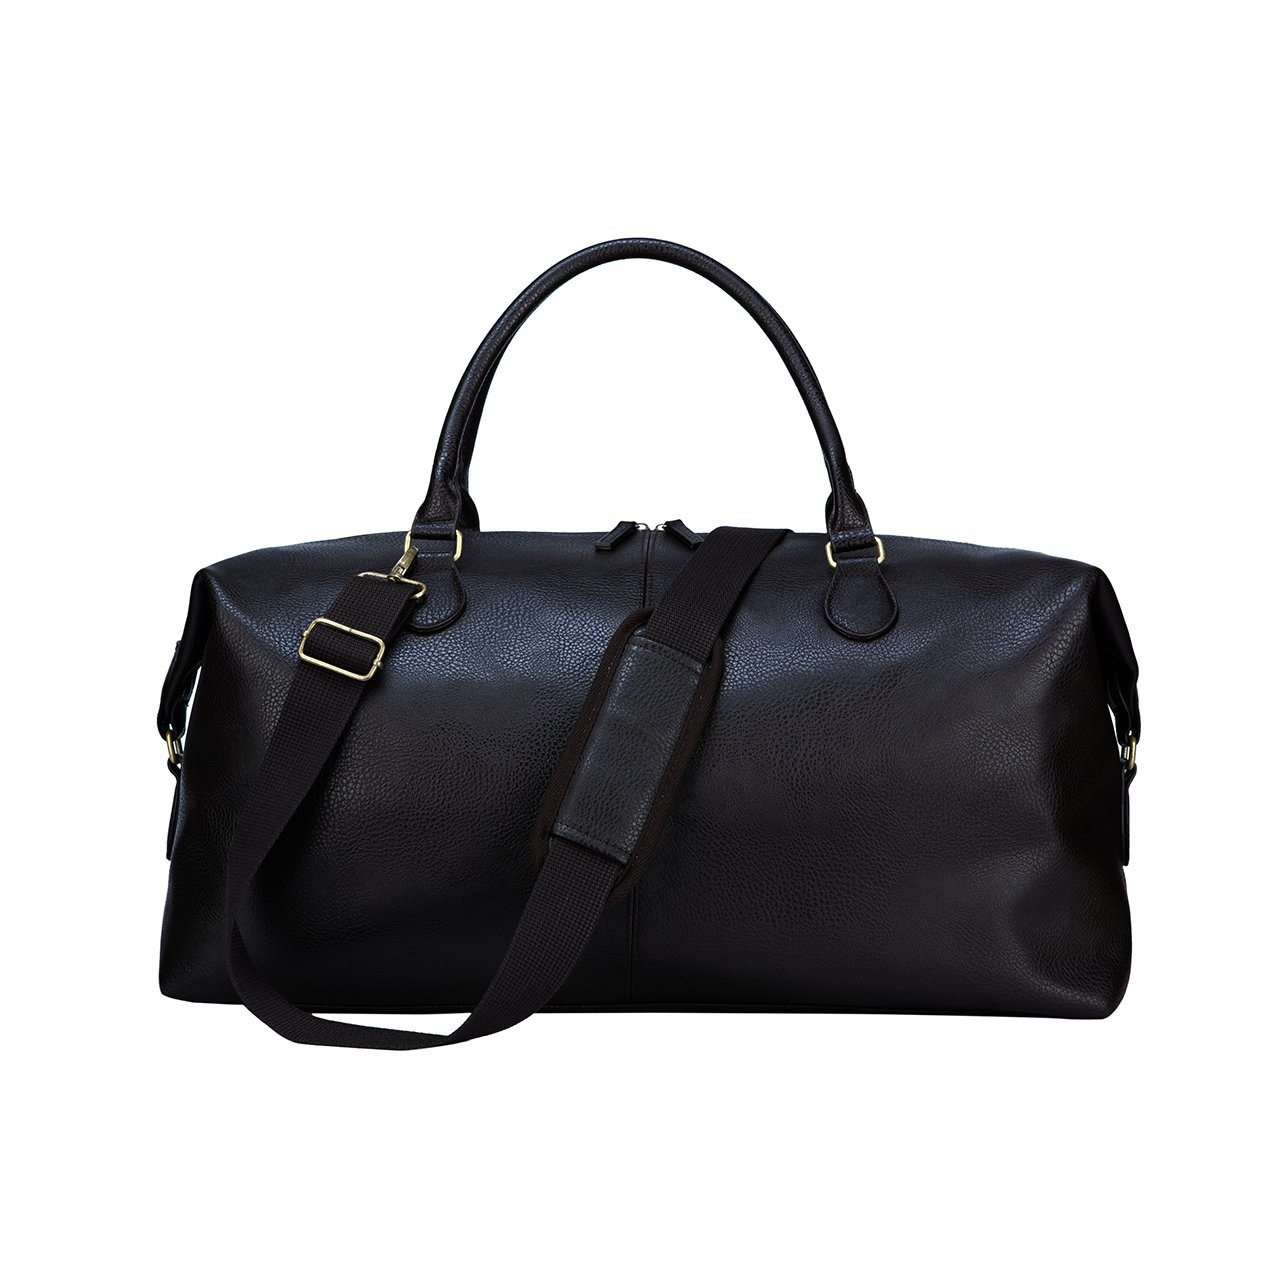 Gunner Black Vegan Leather Duffle Bag